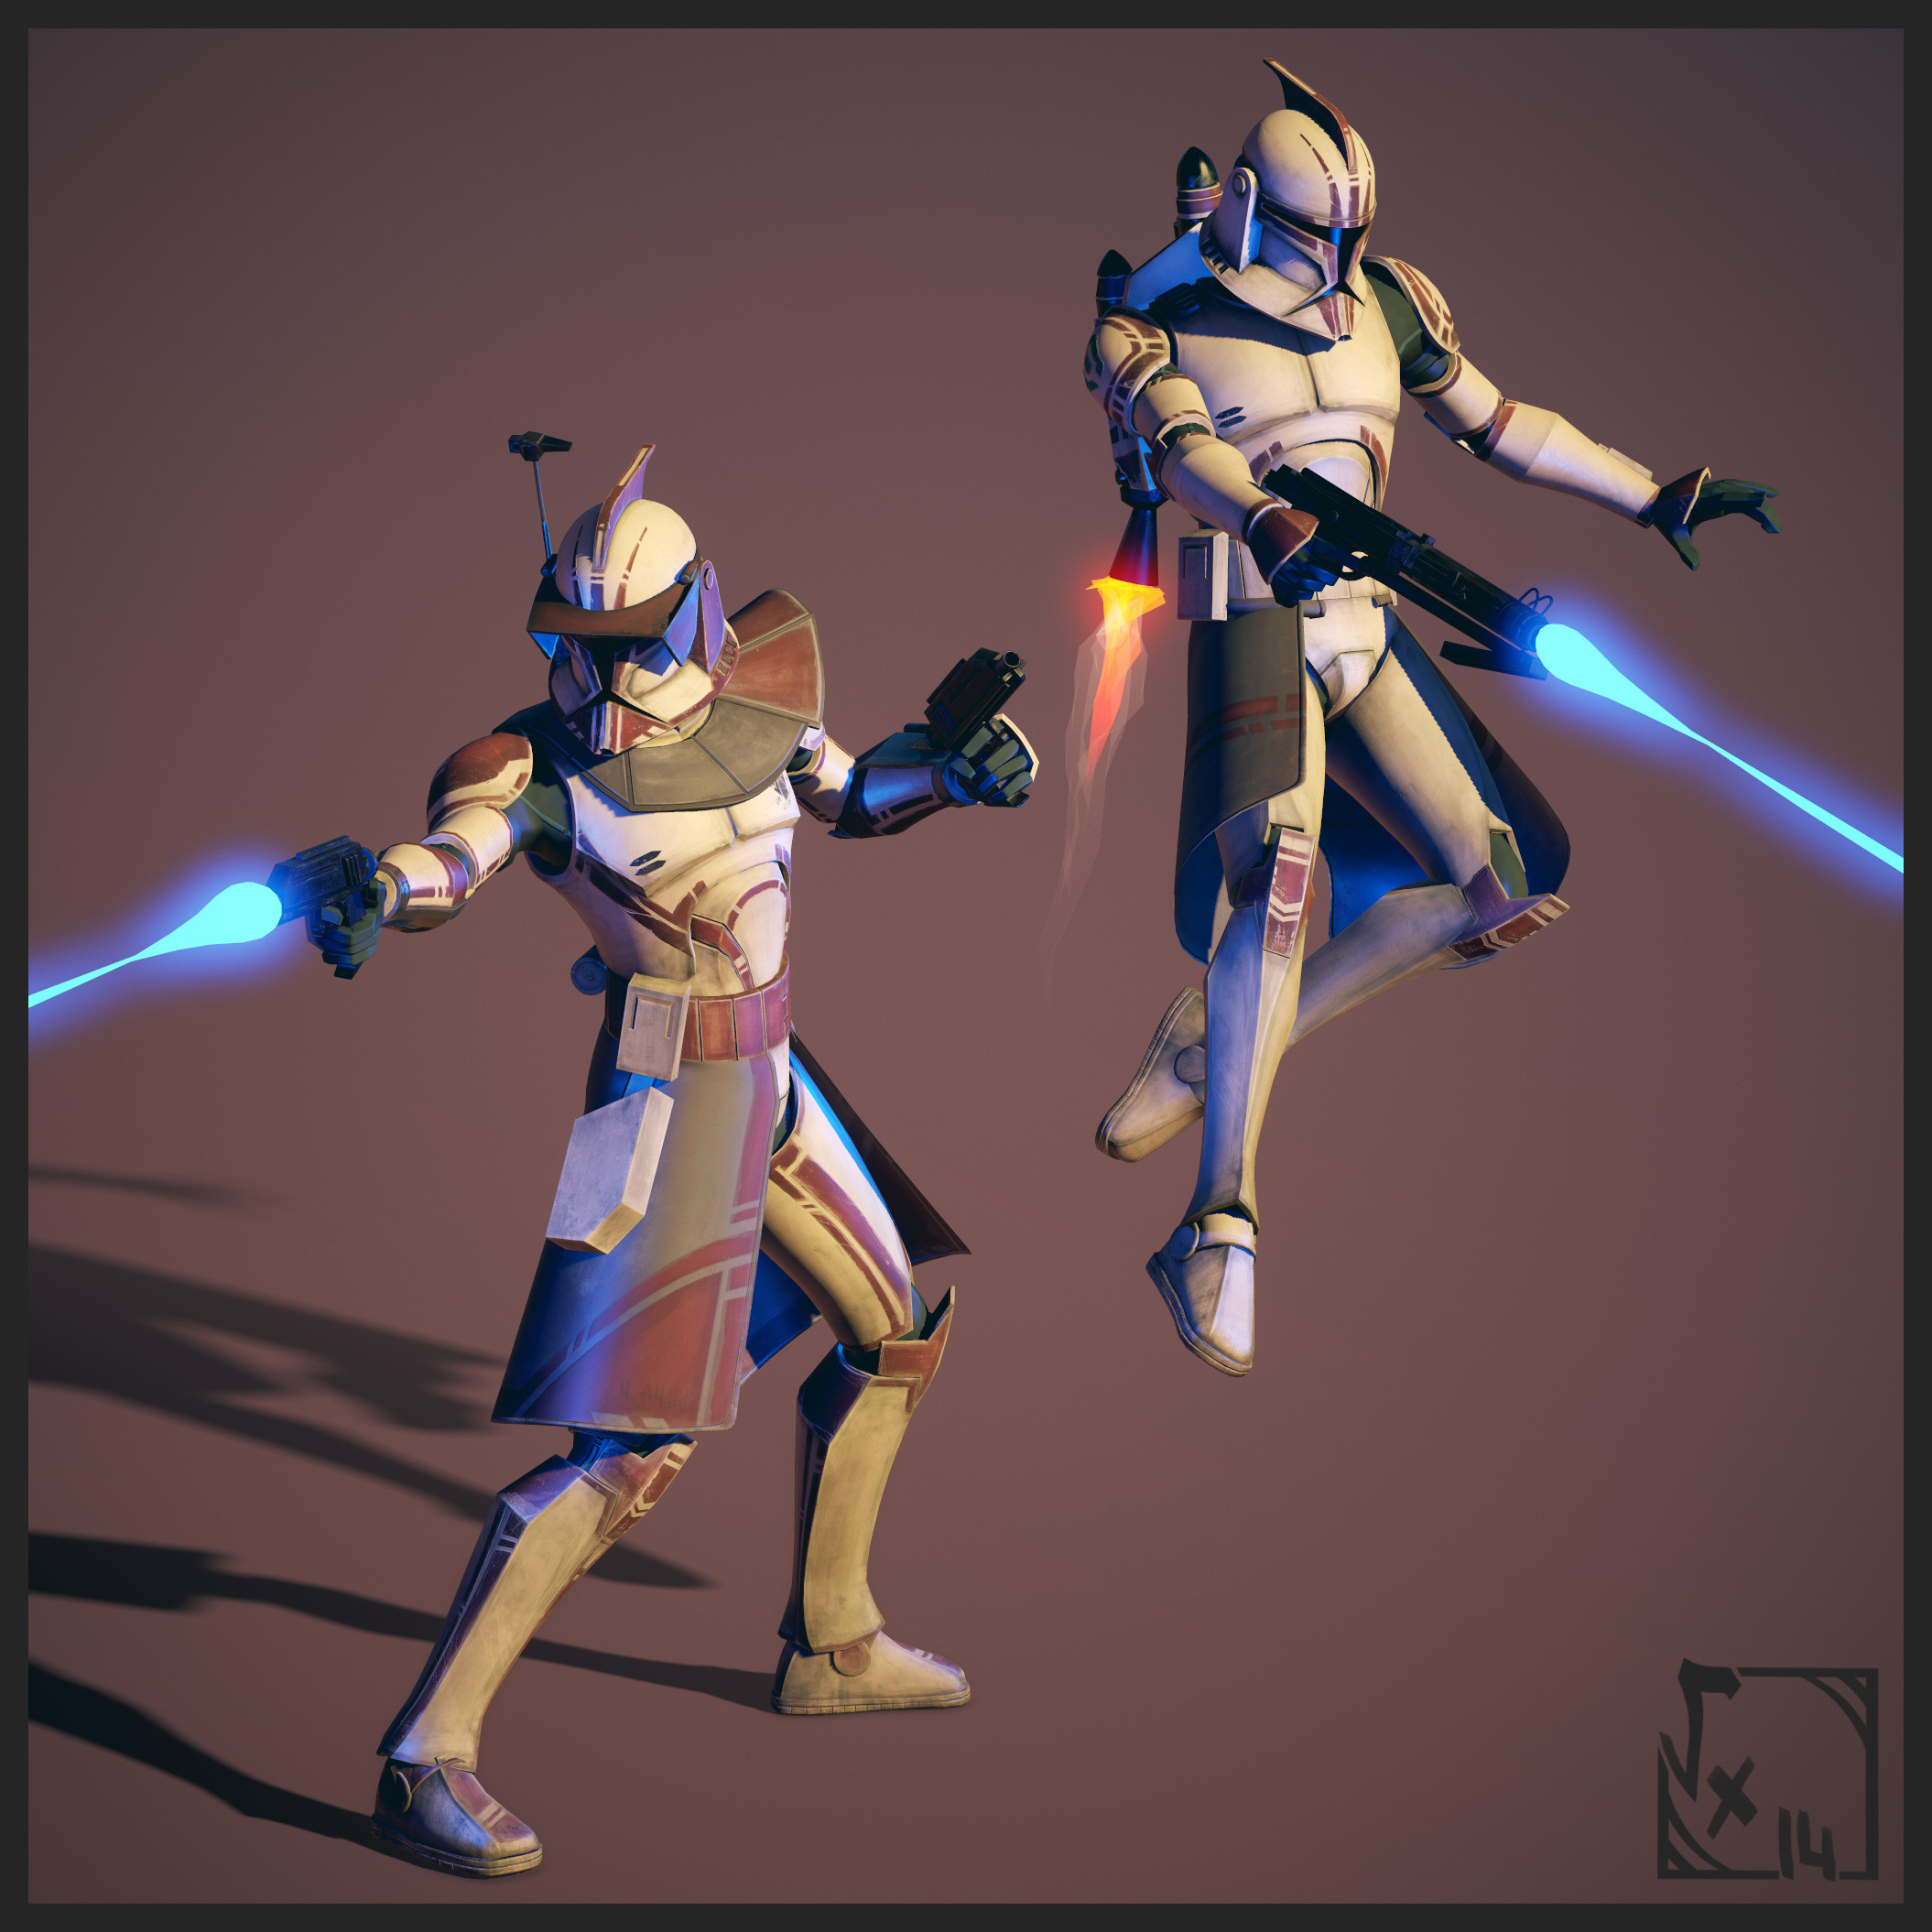 414th Clone Troopers   Made with 3dsMax/Maya, 3DCoat & Akeytsu for posing